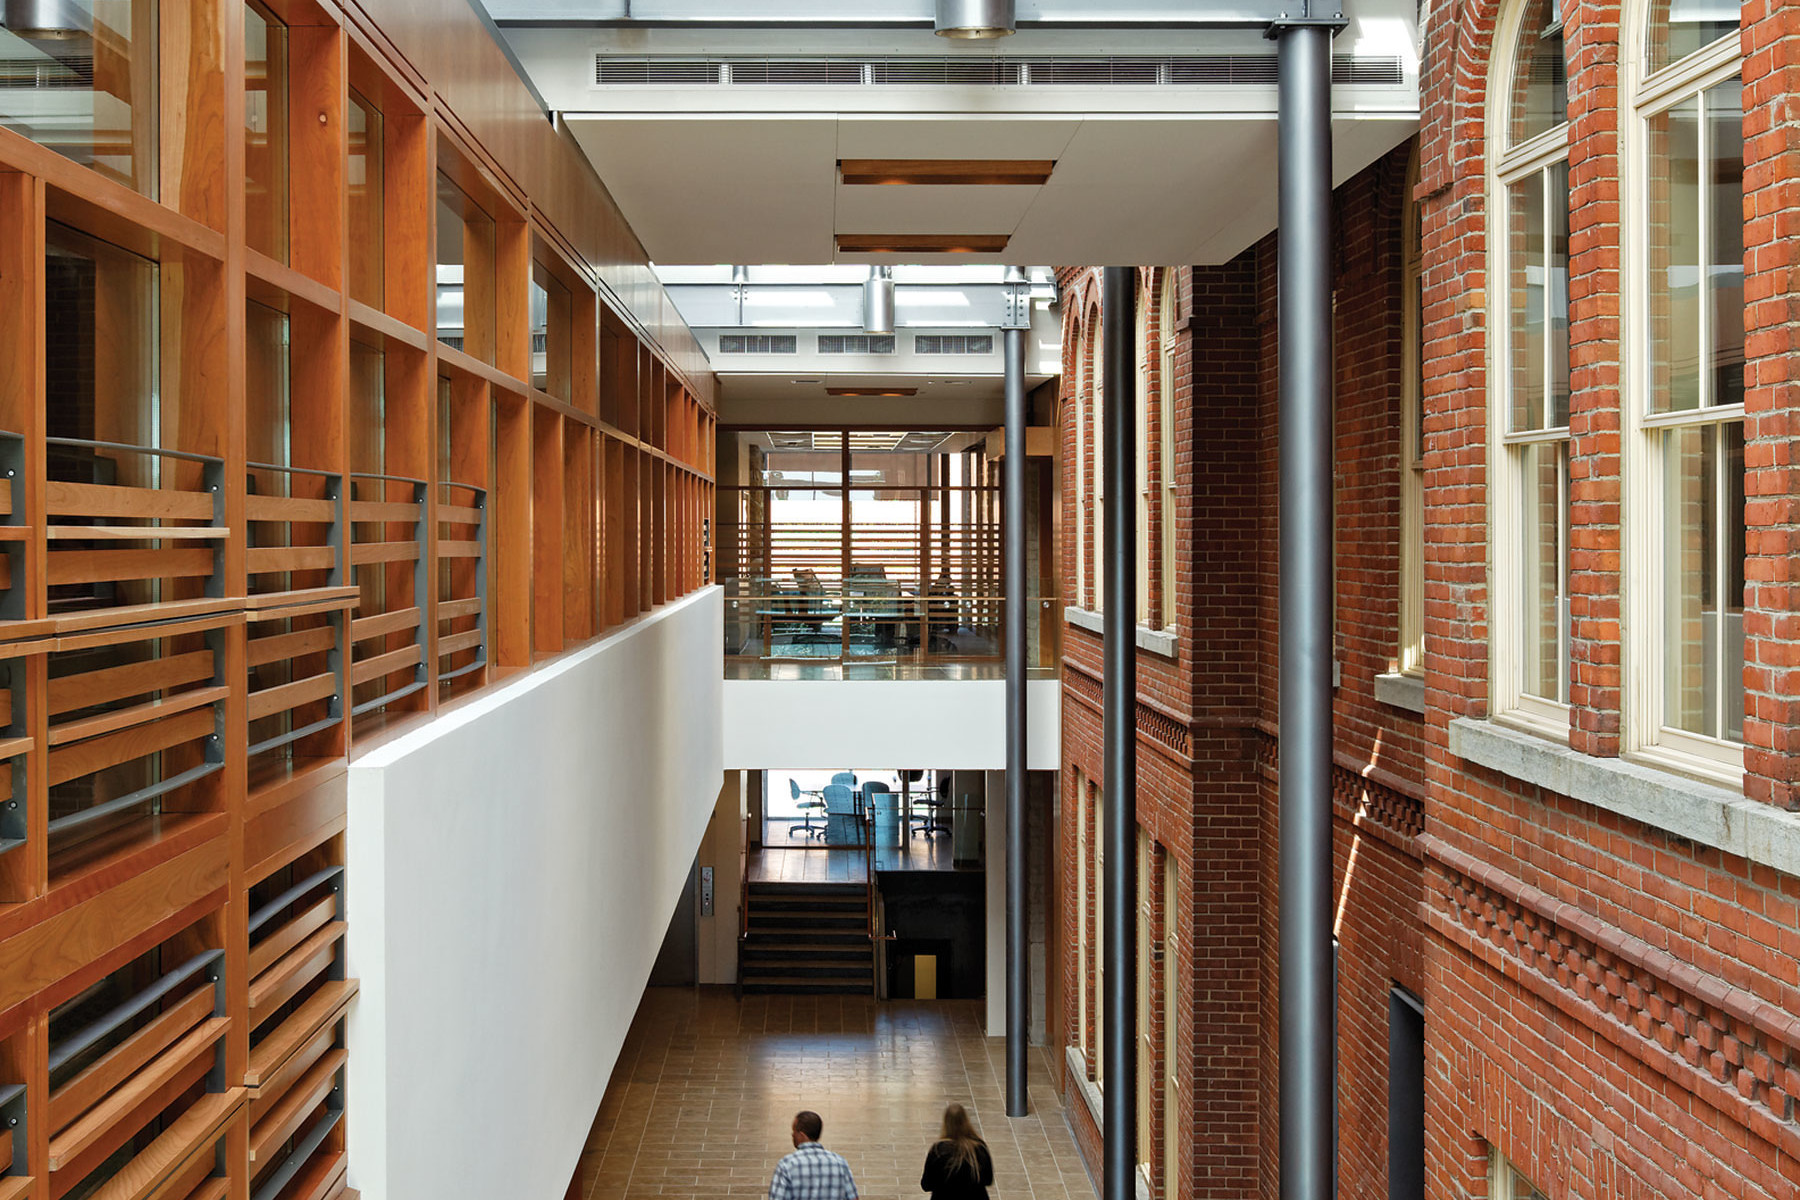 Students walking through double height atrium space with skylights and original red brick facade on right and wood slatted wall on left